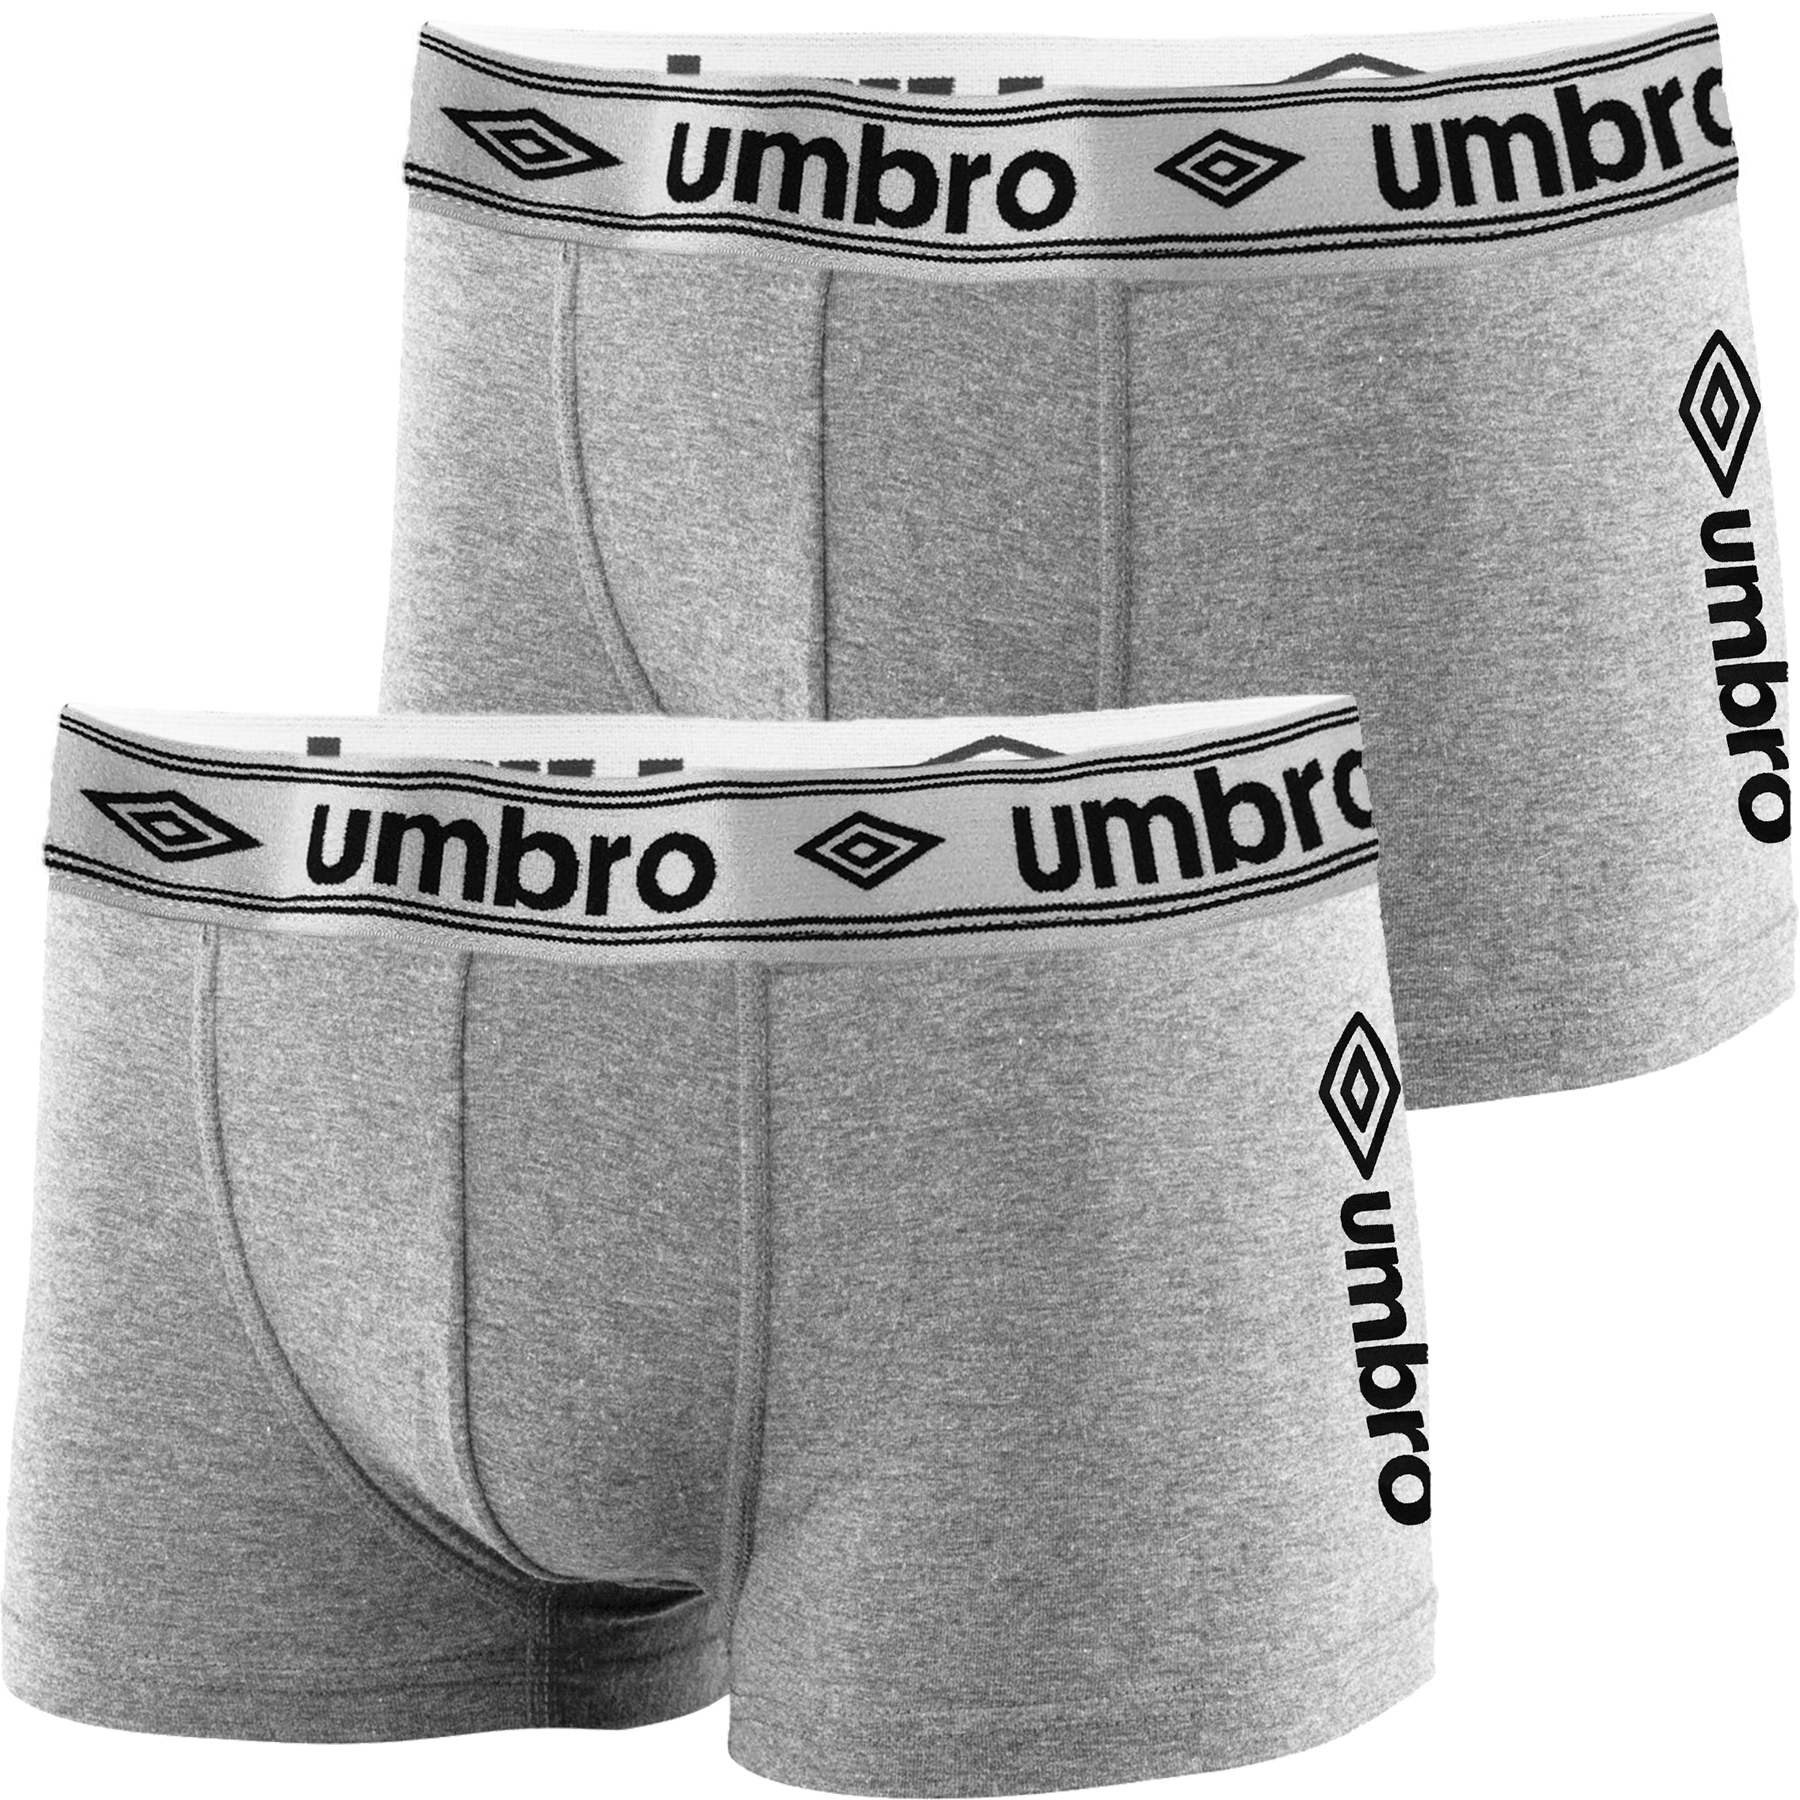 2 Pack Mens Umbro Designer Boxers Shorts Underwear Trunks Multipack Set New